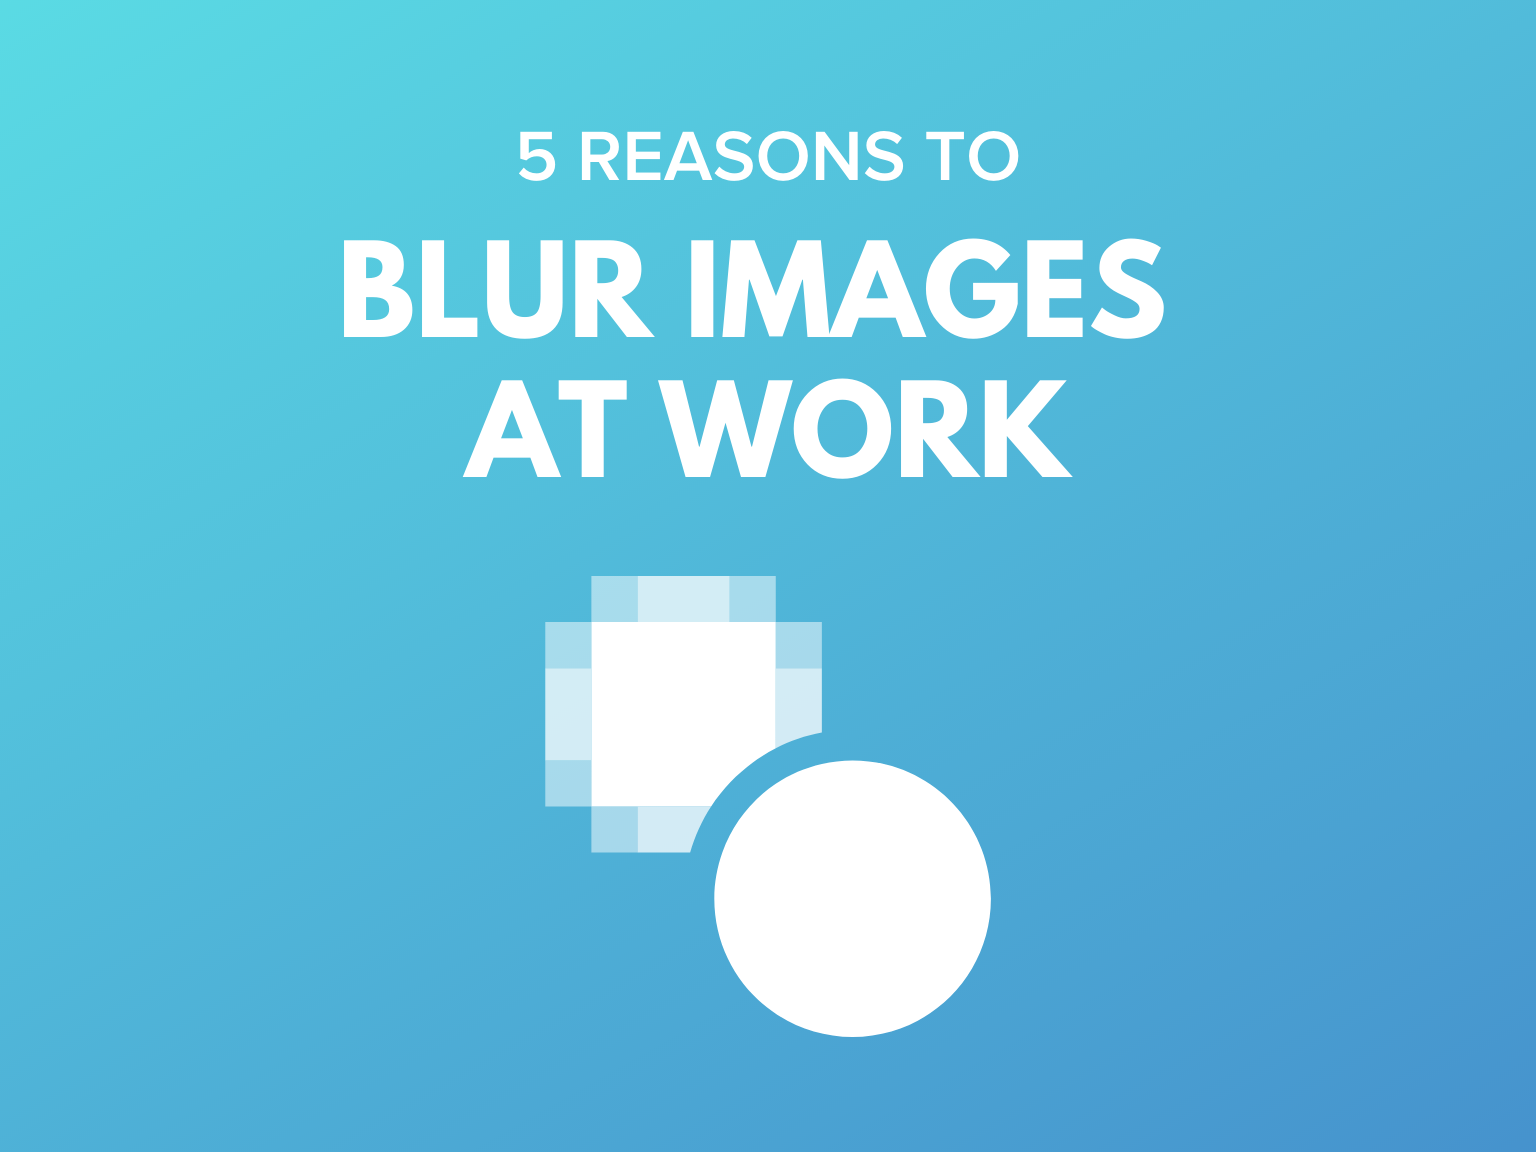 5 Reasons to Blur Images at Work